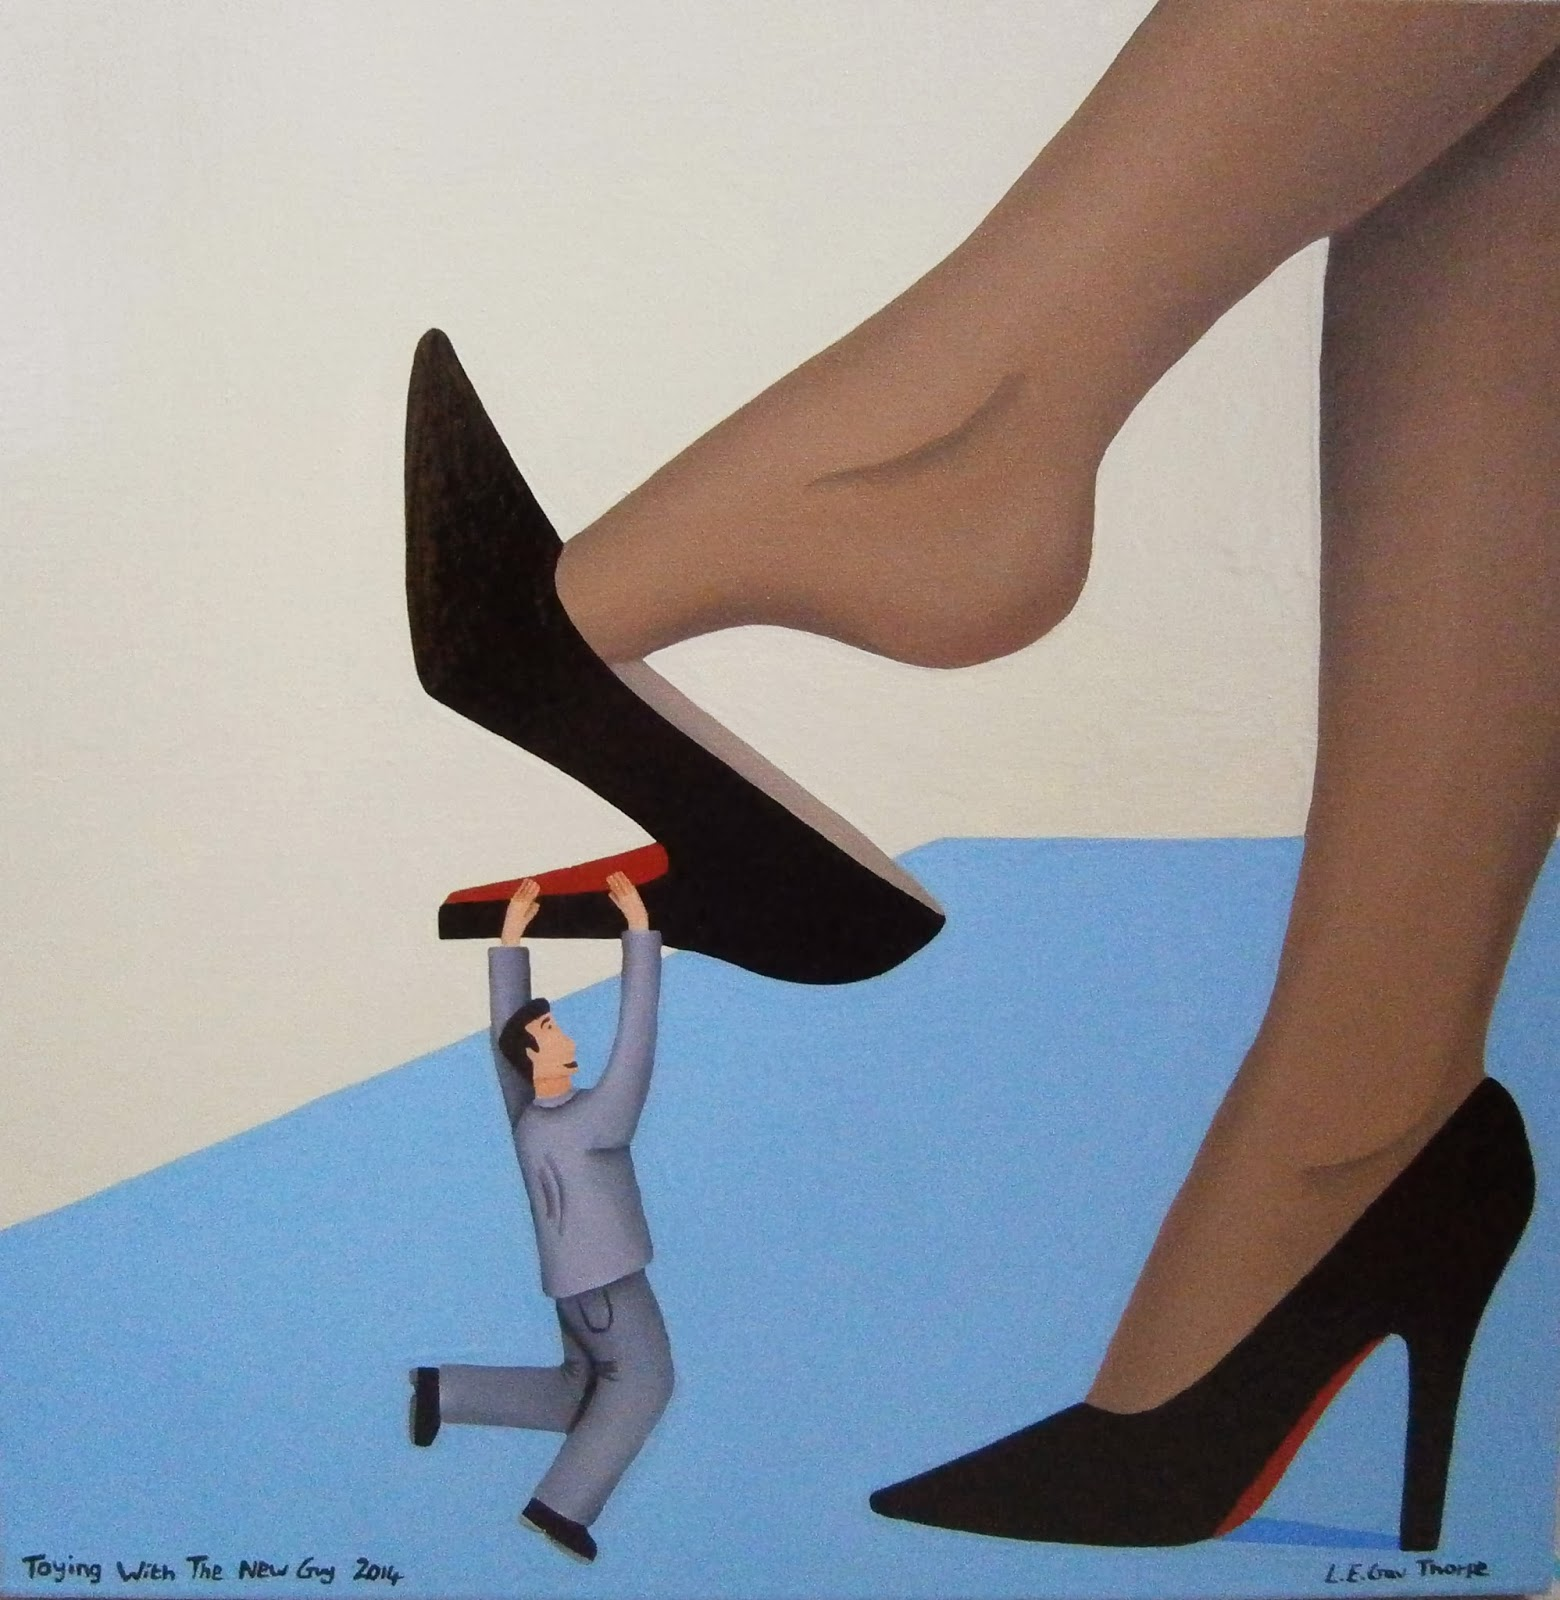 A shrunken man hanging from the heel of a woman's dangling shoe